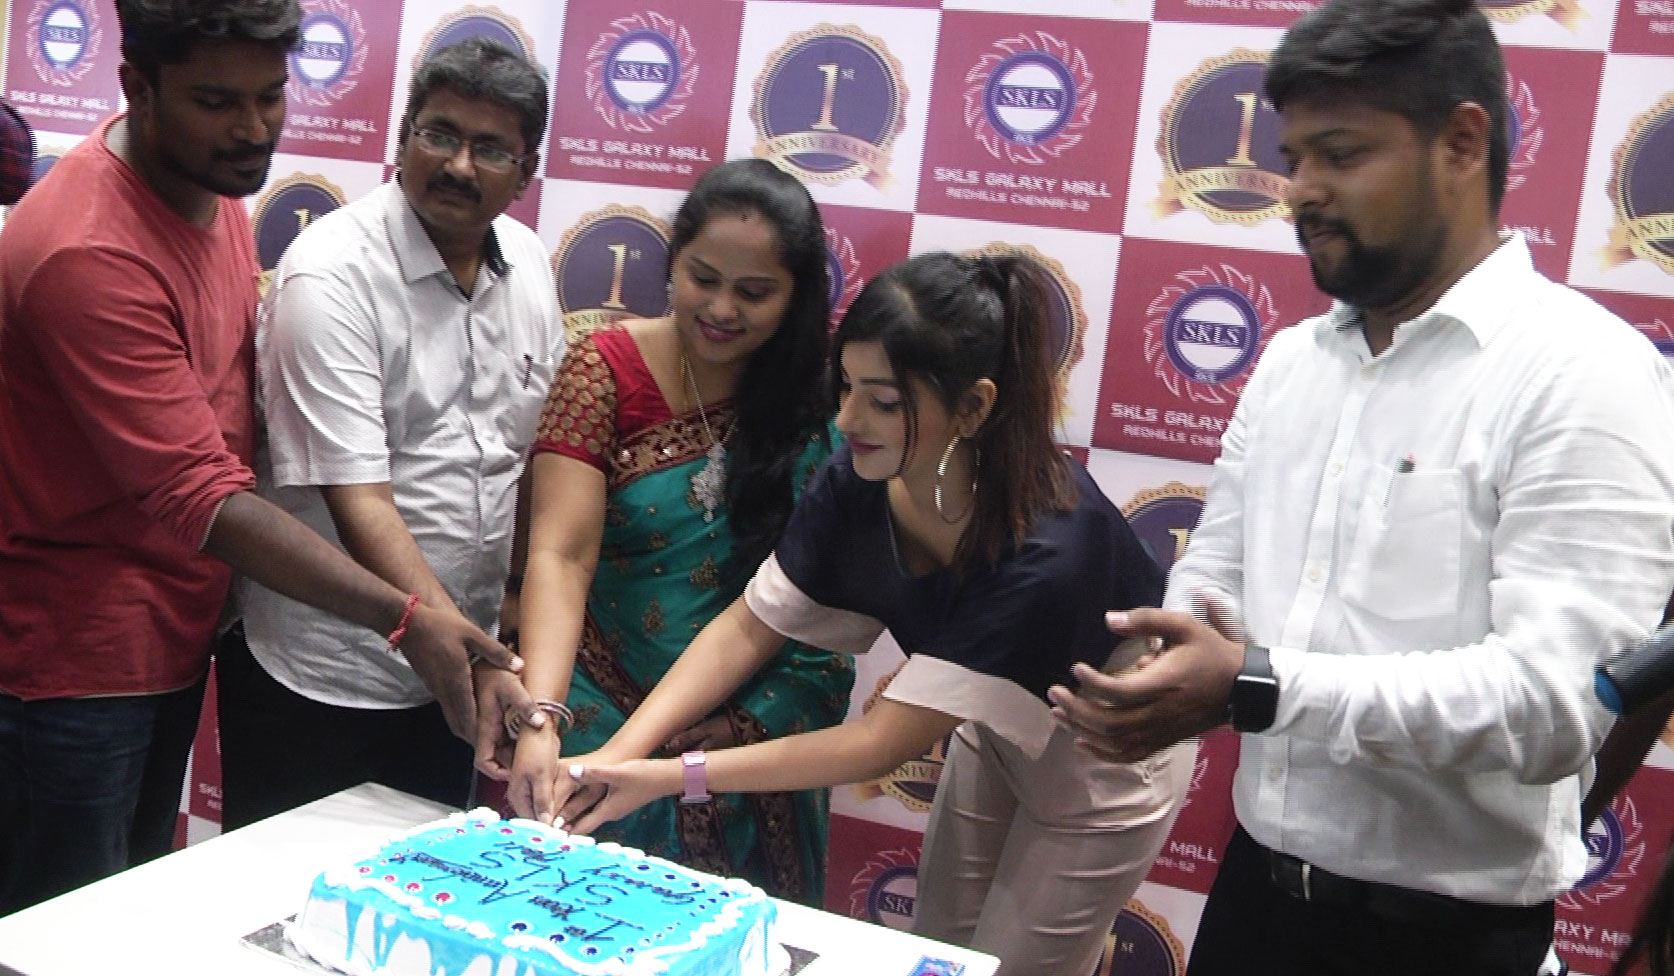 Yashika Anand in SKLS Galaxy Mall 1st Anniversary Celebration